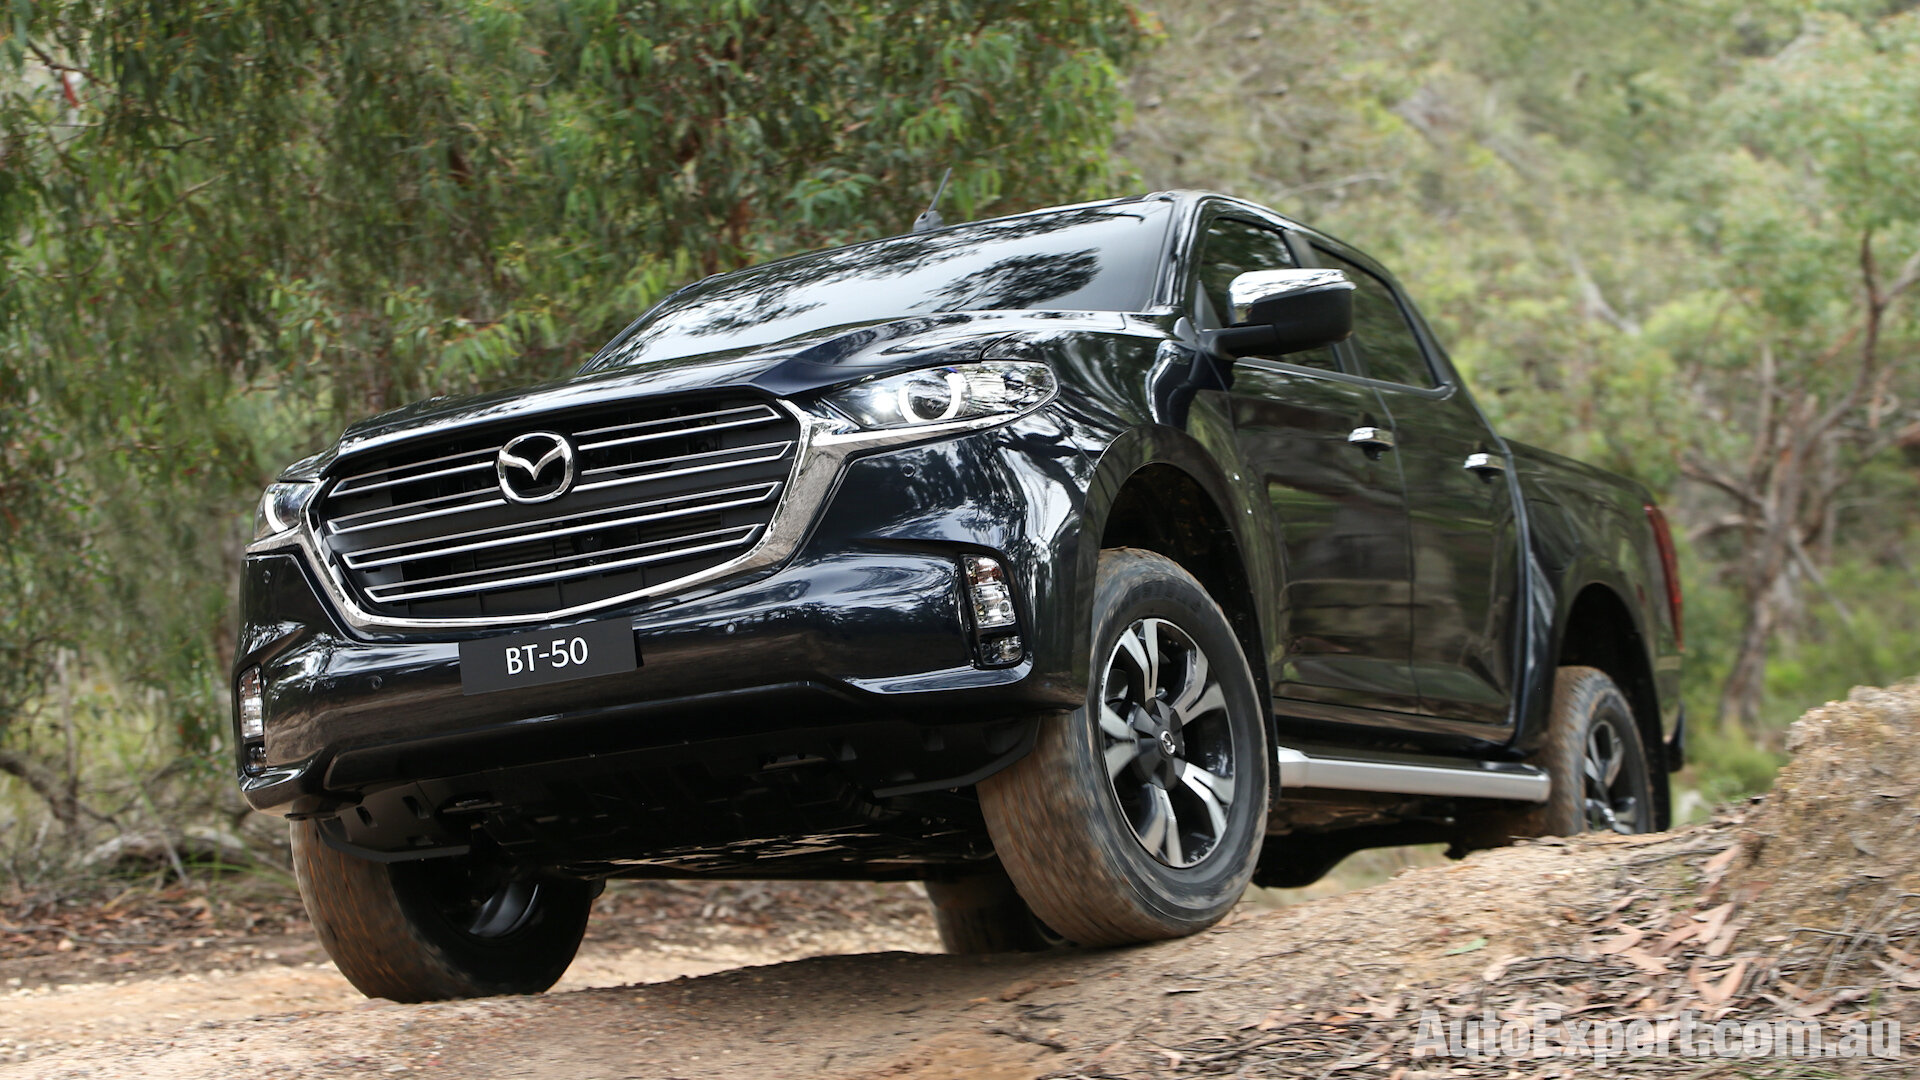 2021 Mazda Bt 50 Buyer S Guide Auto Expert By John Cadogan Save Thousands On Your Next New Car